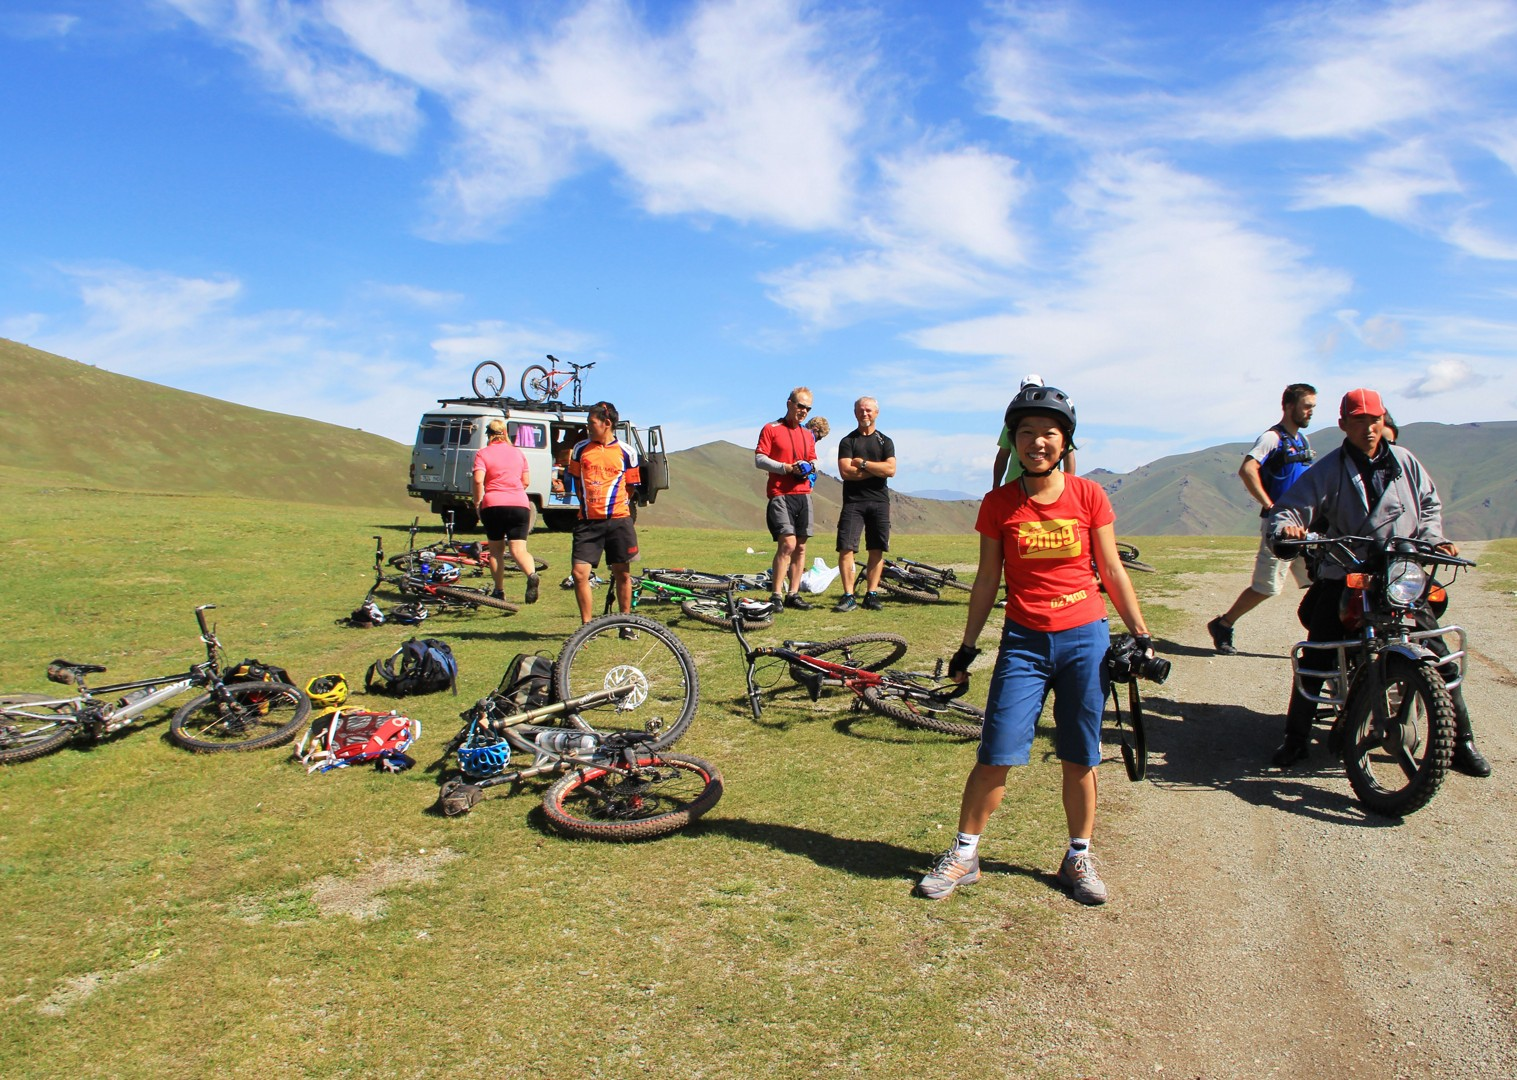 cycling-holiday-in-mongolia-orkhon-falls.jpg - Mongolia - Route of the Nomads - Cycling Holiday - Cycling Adventures